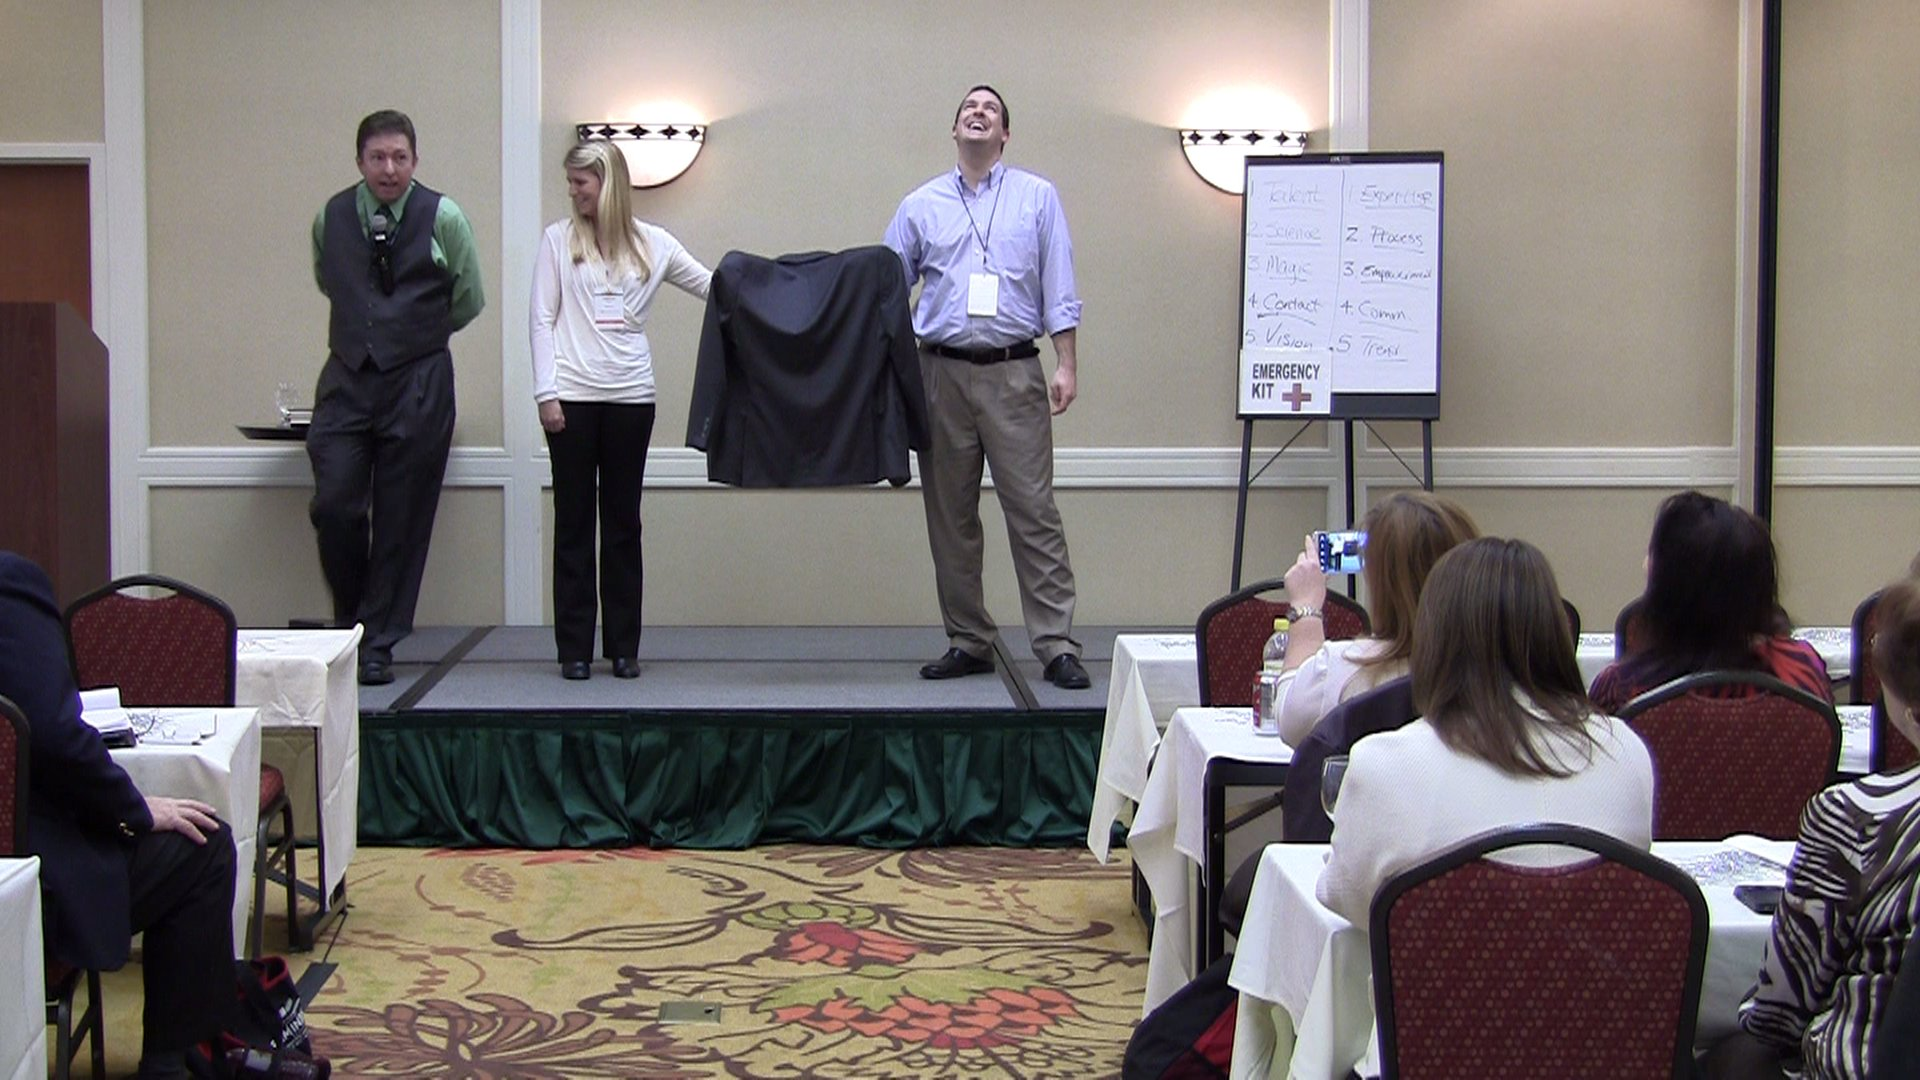 Fun moments at conferences don't have to be wasteful - you just have to work with the provider to ensure that objectives are consistent.